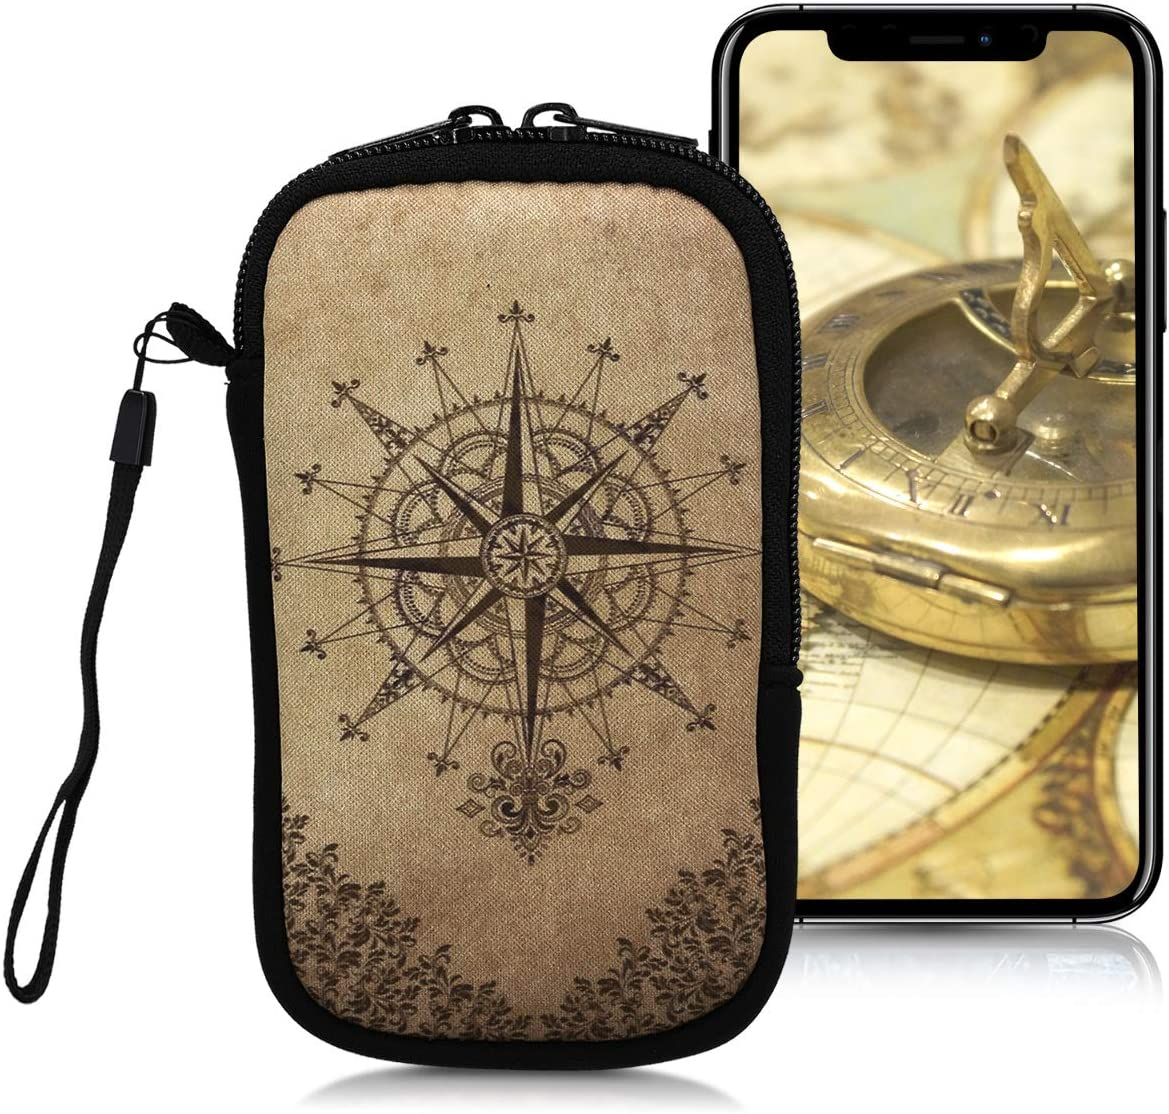 "kwmobile Neoprene Sleeve for Smartphone Size S - 4.5"" - Shock Absorbing Pouch Case - Protective Phone Bag - Baroque Compass Dark Brown/Beige"